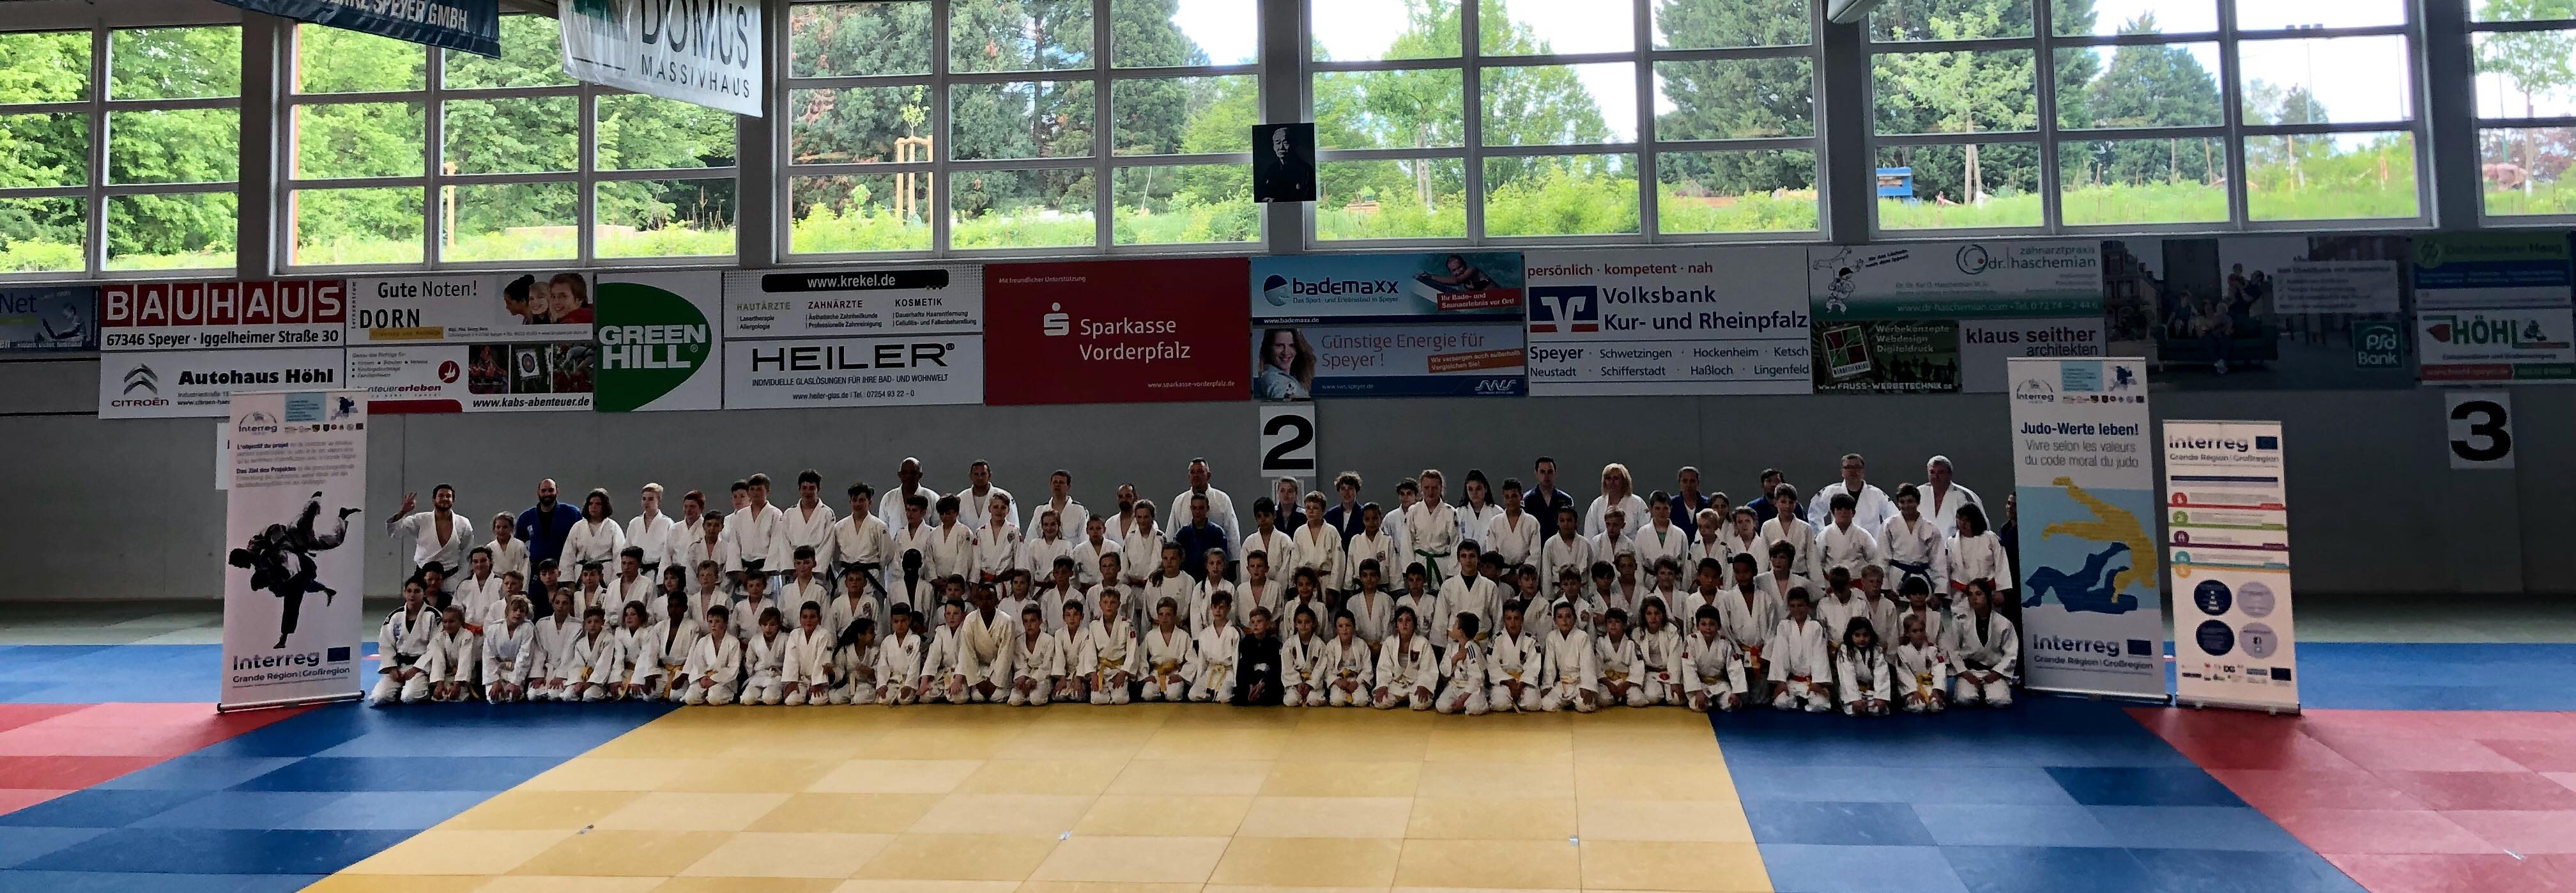 Interreg Judo Training & Competition - Speyer 11.05.2019